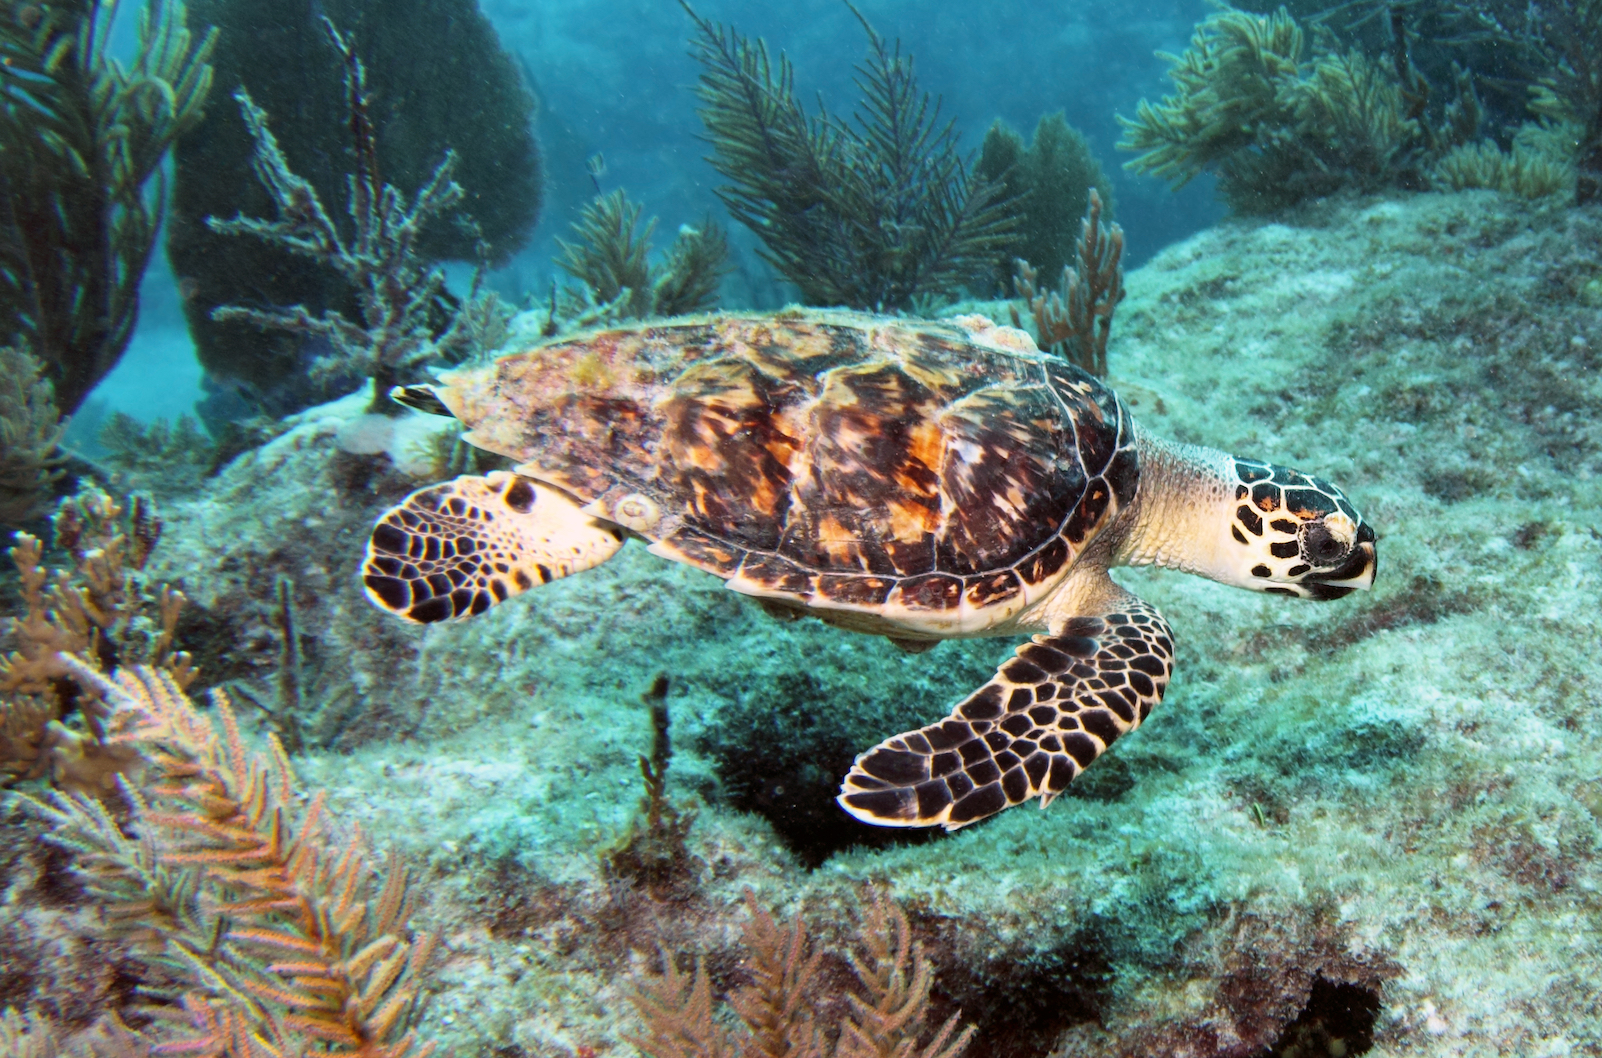 A persistent algae bloom in the Gulf of Mexico has become a huge threat to sea turtles, a species which is already endangered.